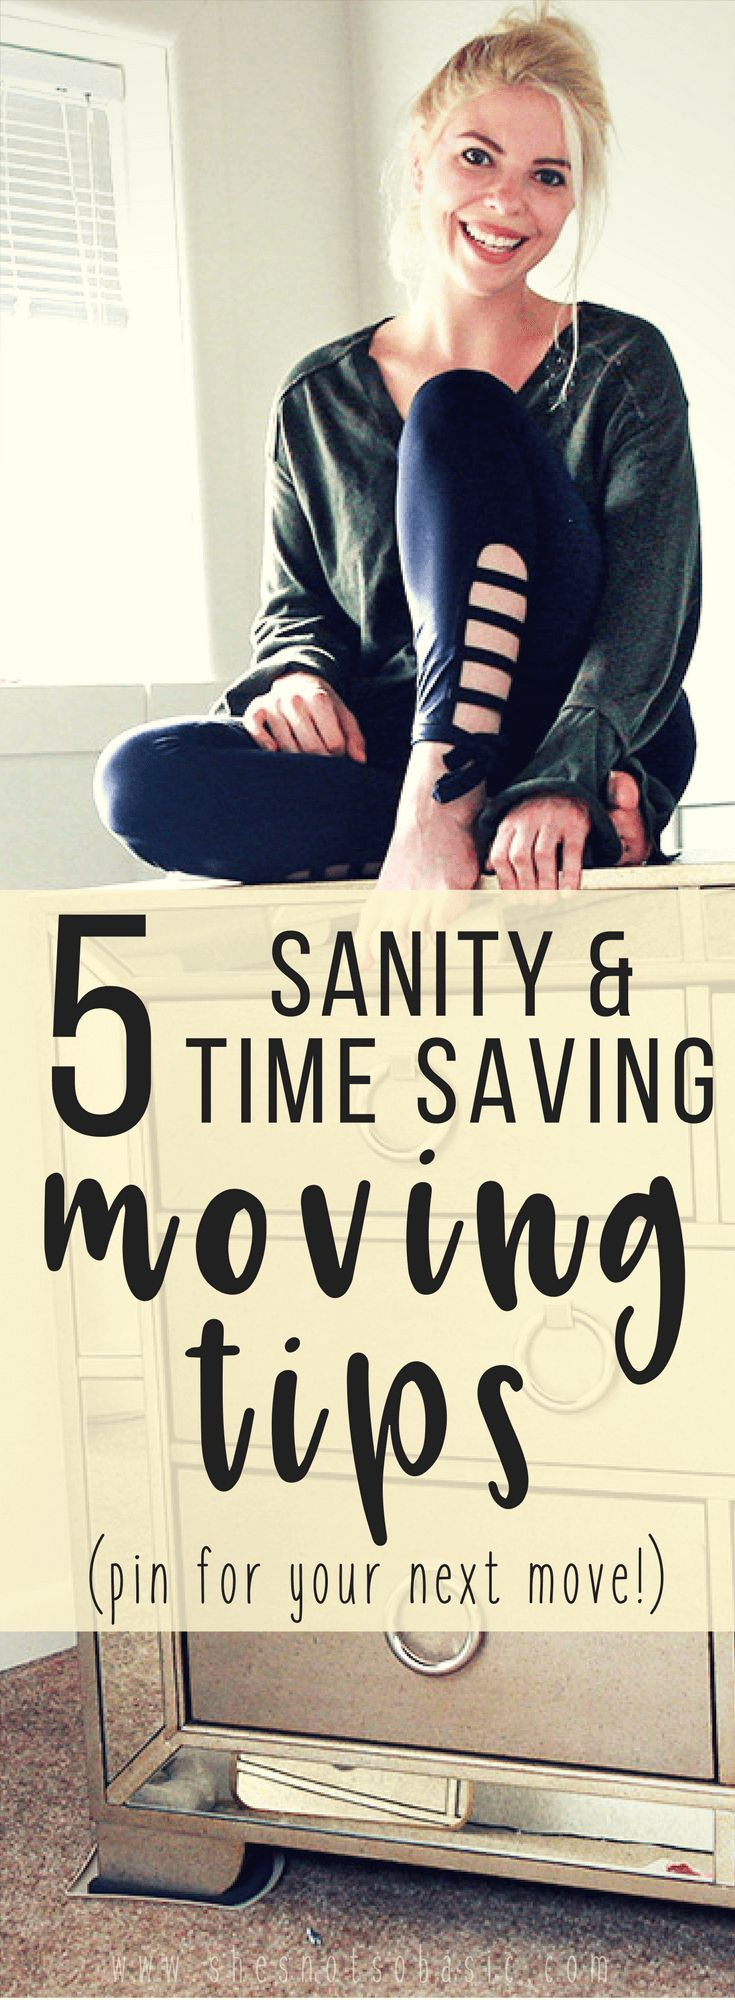 Moving is the worst, amiright?! Well I mean moving somewhere new is always exciting but the actual moving part is the worst which is why I'm sharing these 5 sanity and time saving moving tips! | moving tips, tips for moving, moving hacks, #movingtips, #moving, #timesaver